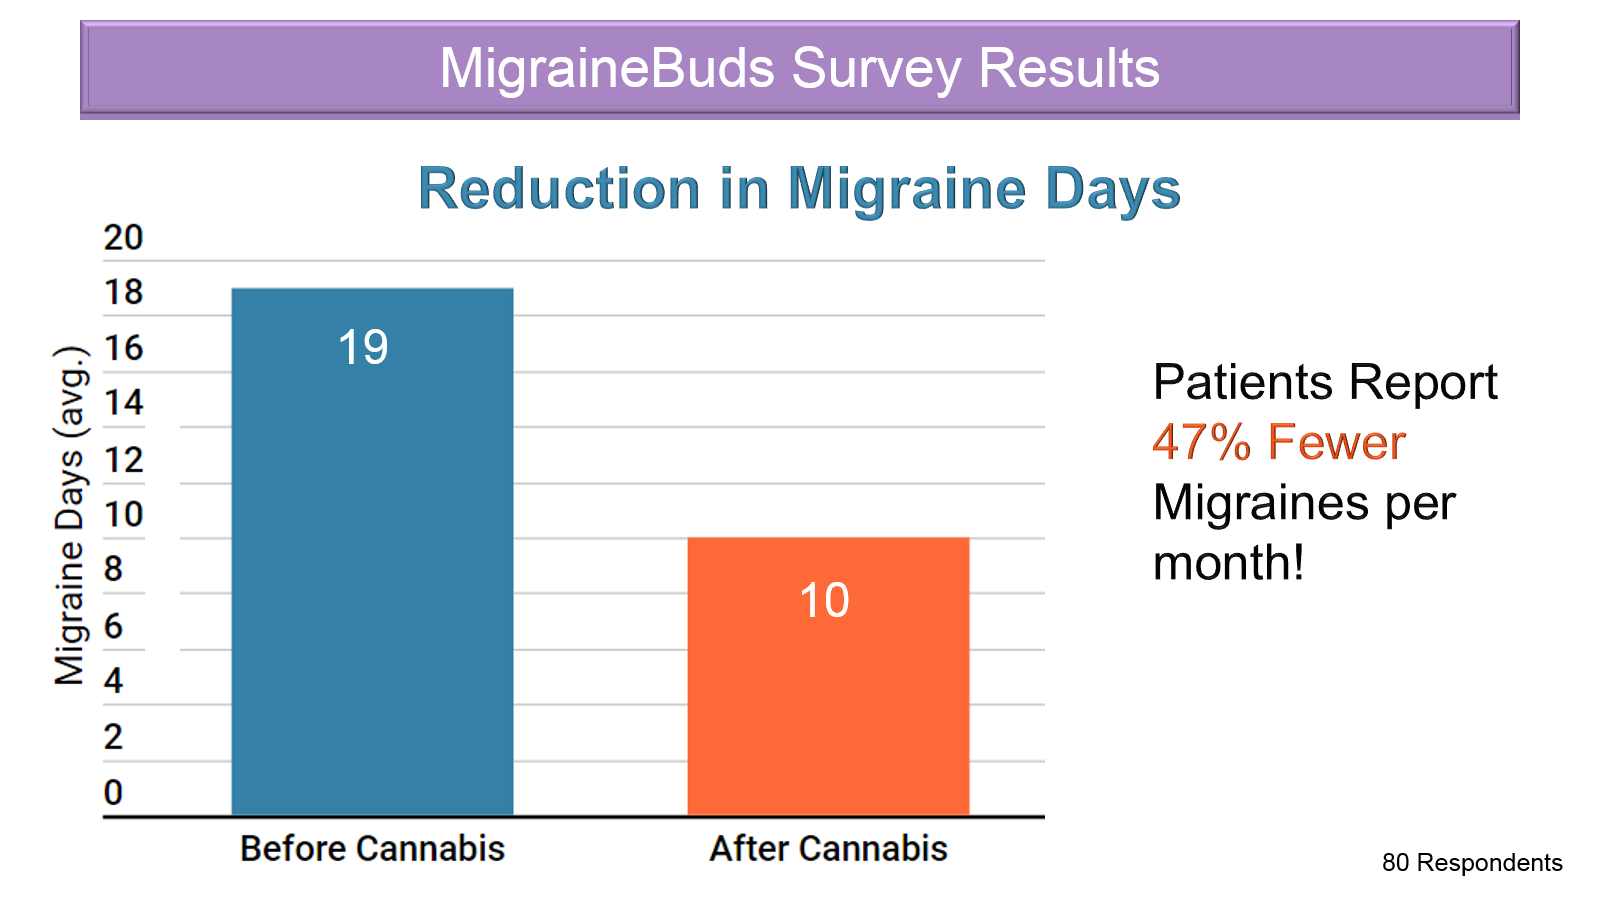 Survey Results - patients report 47% fewer migraines per month